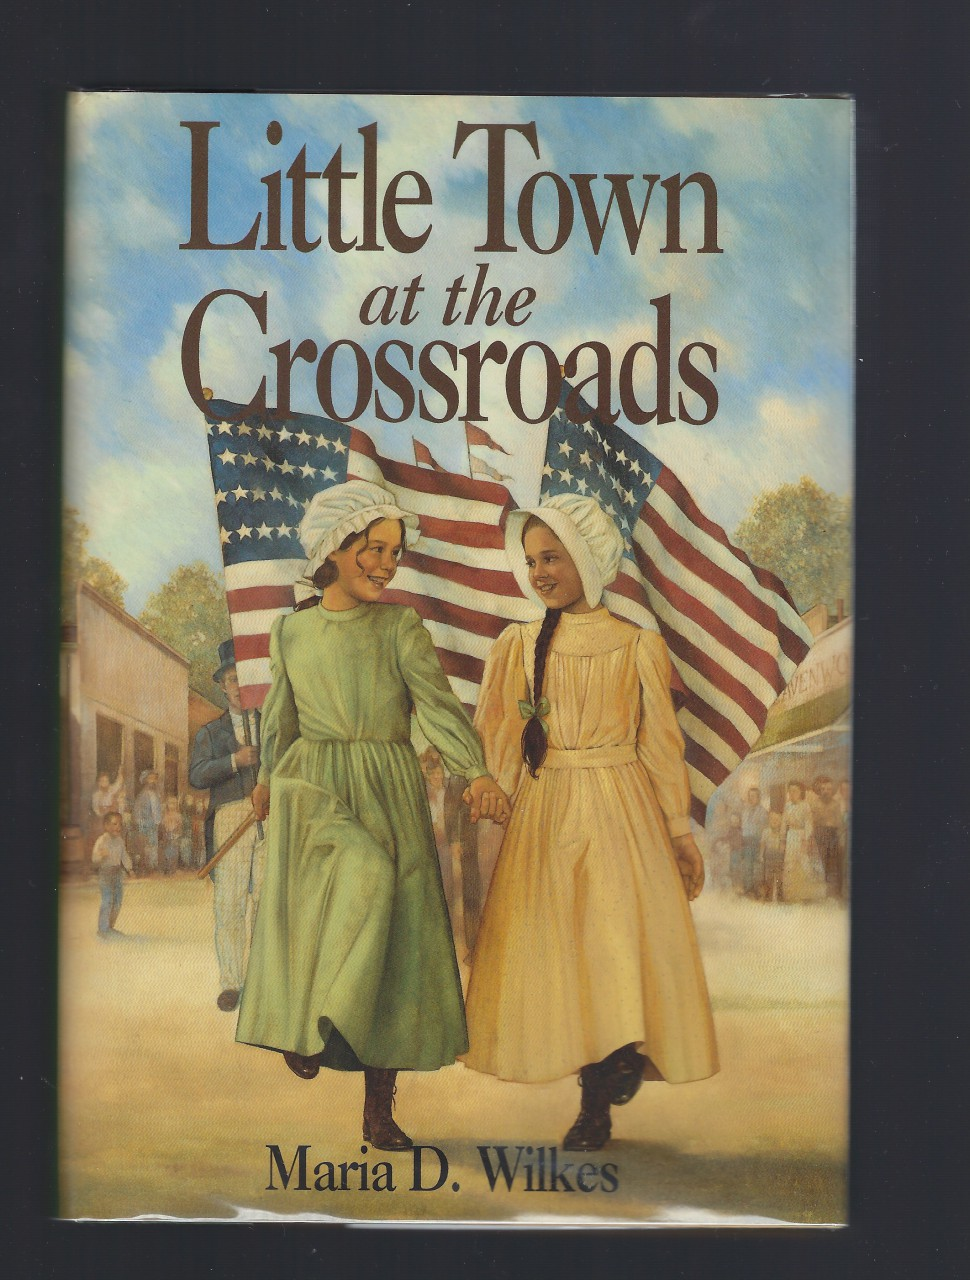 Little Town at the Crossroads 1st Print Out of Print Hardback/Dust Jacket (Little House Caroline Years) Maria D. Wilkes 1997, Maria D. Wilkes